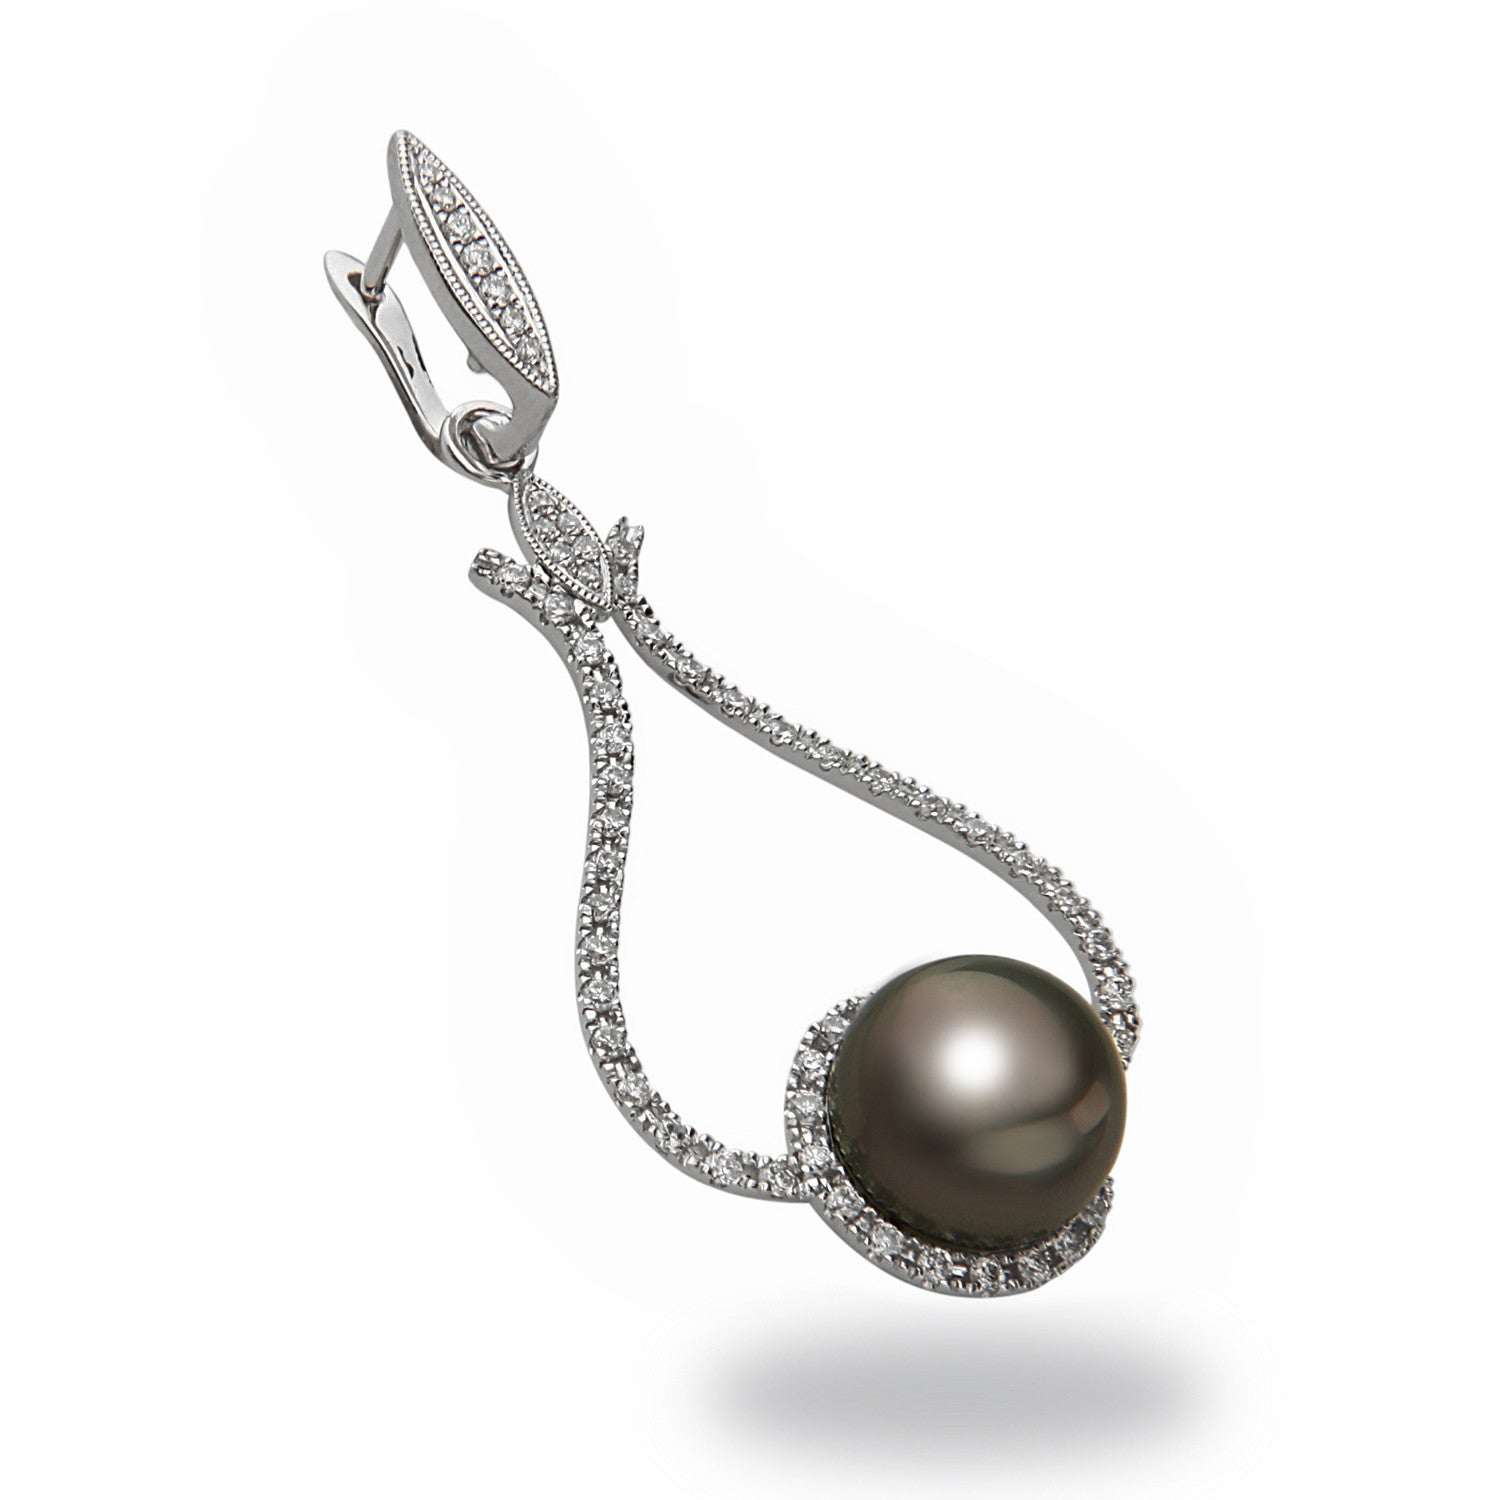 Chandelier 10x11mm Tahitian Pearl and Diamond Earrings